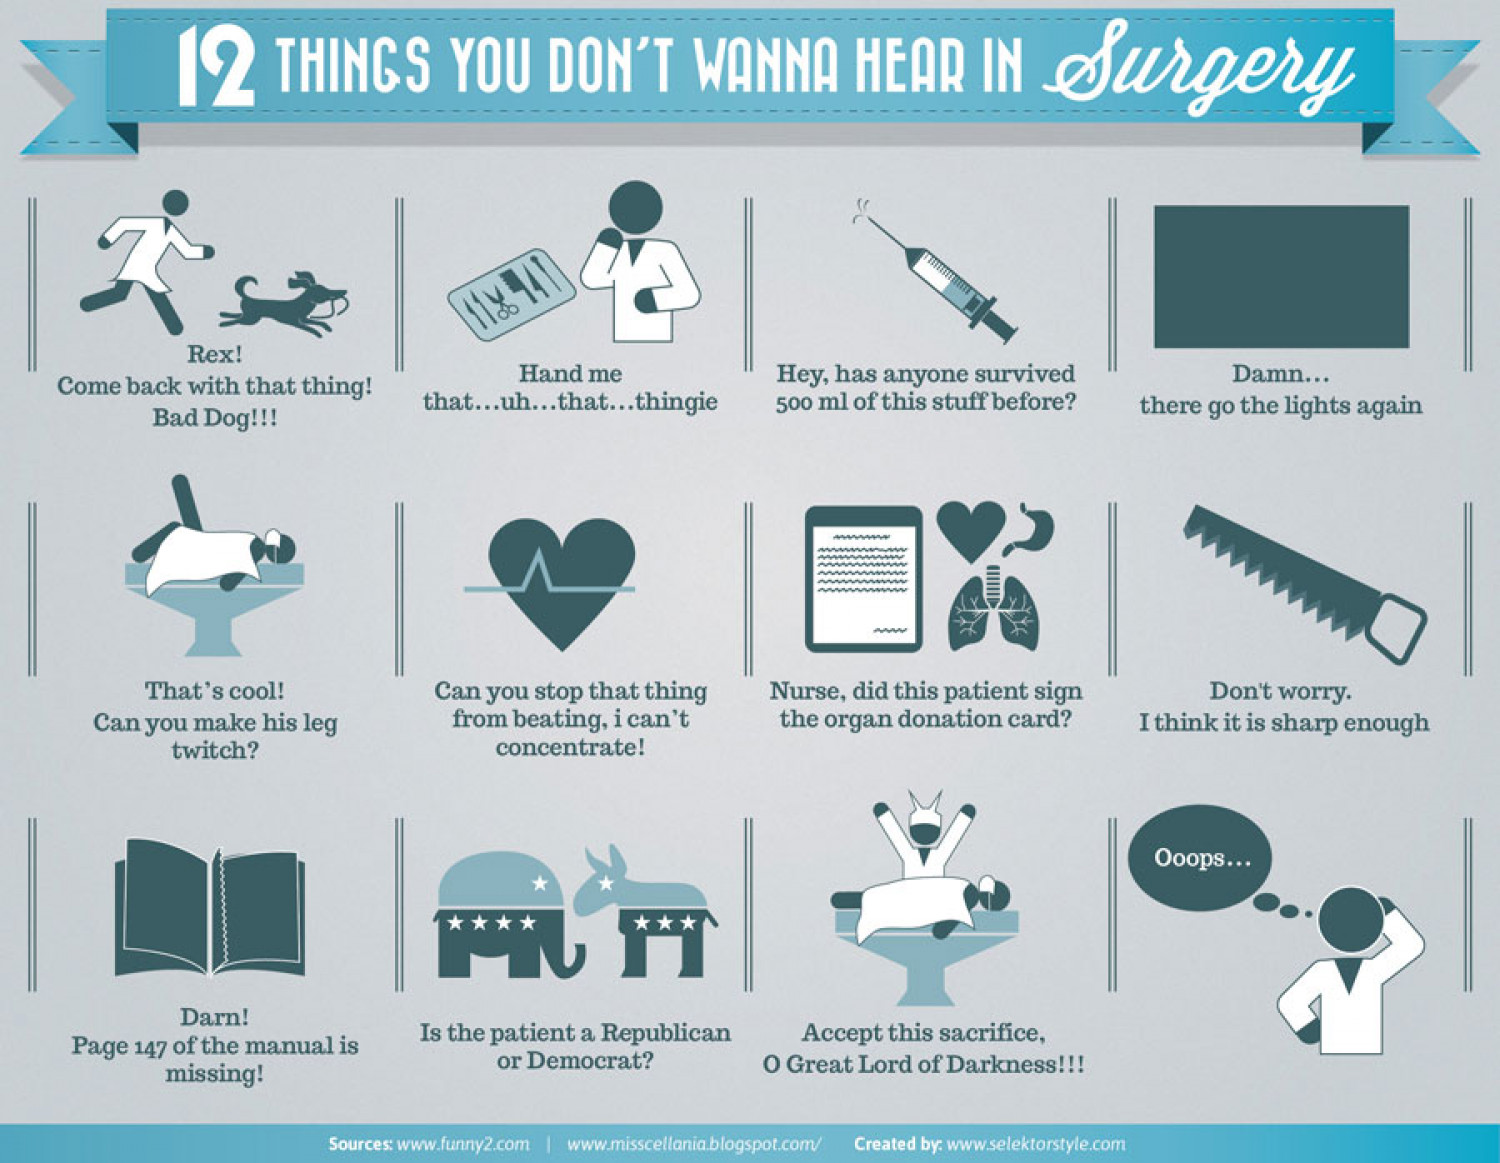 12 things you don't wanna hear during surgery Infographic